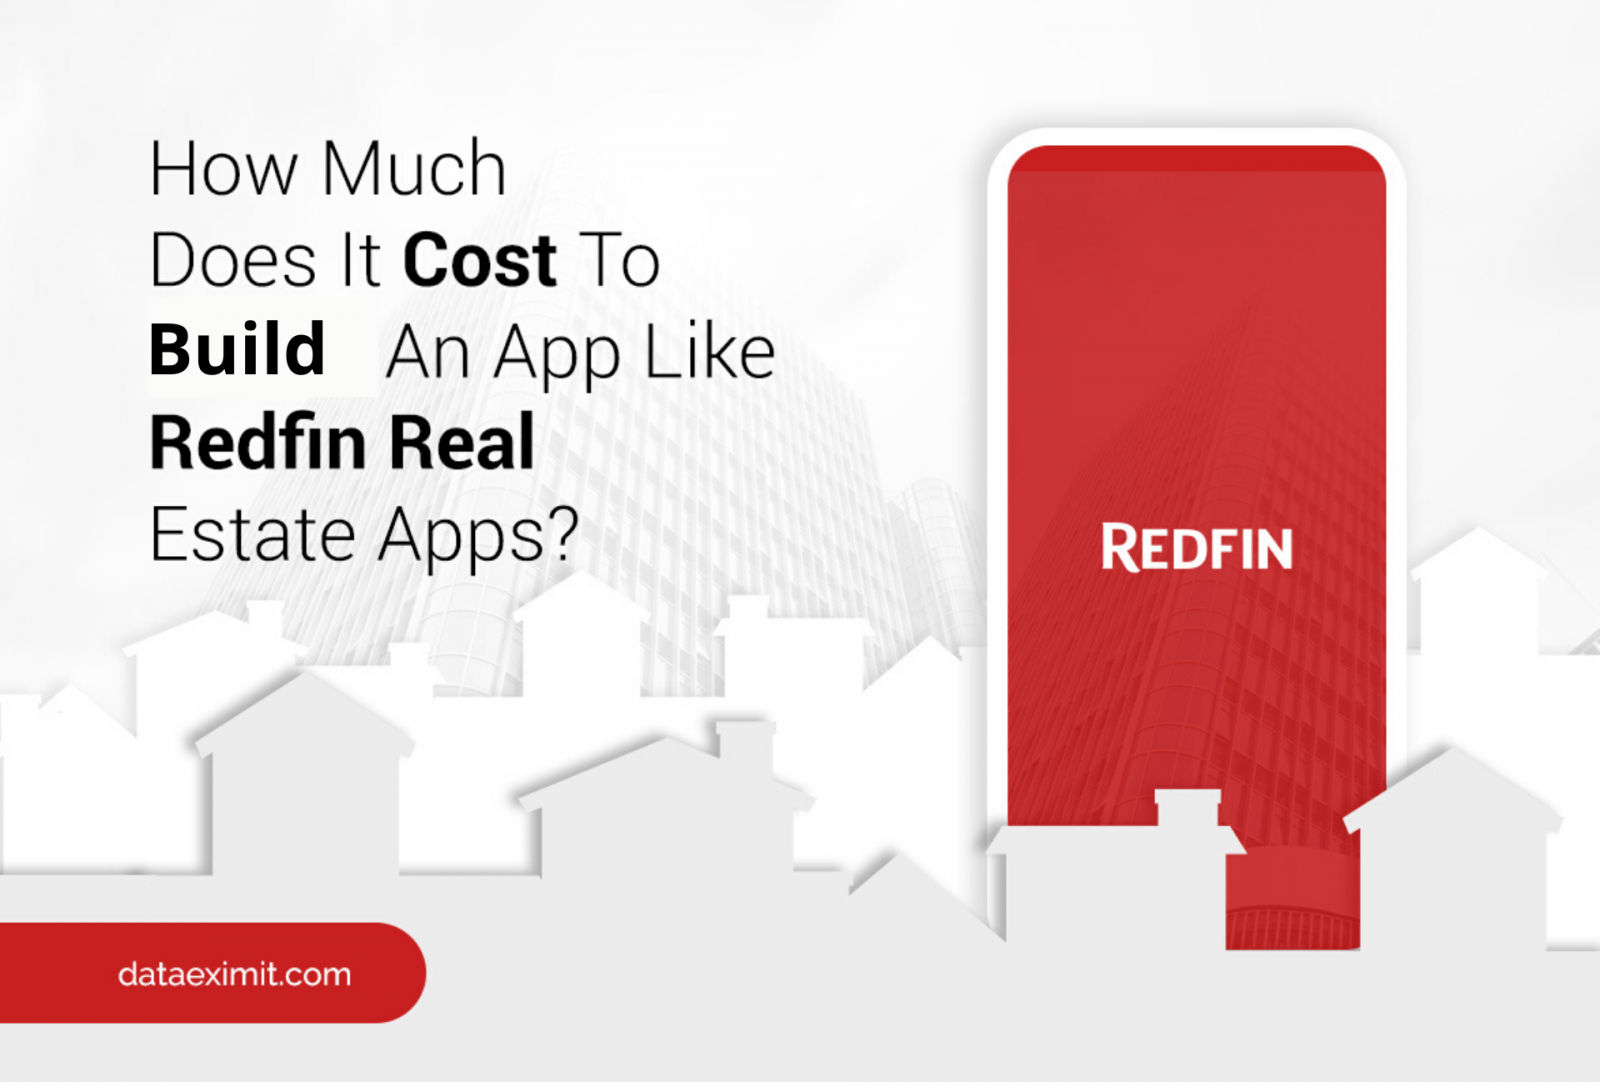 How Much Does It Cost To Build An App Like REDFIN Real Estate Apps?